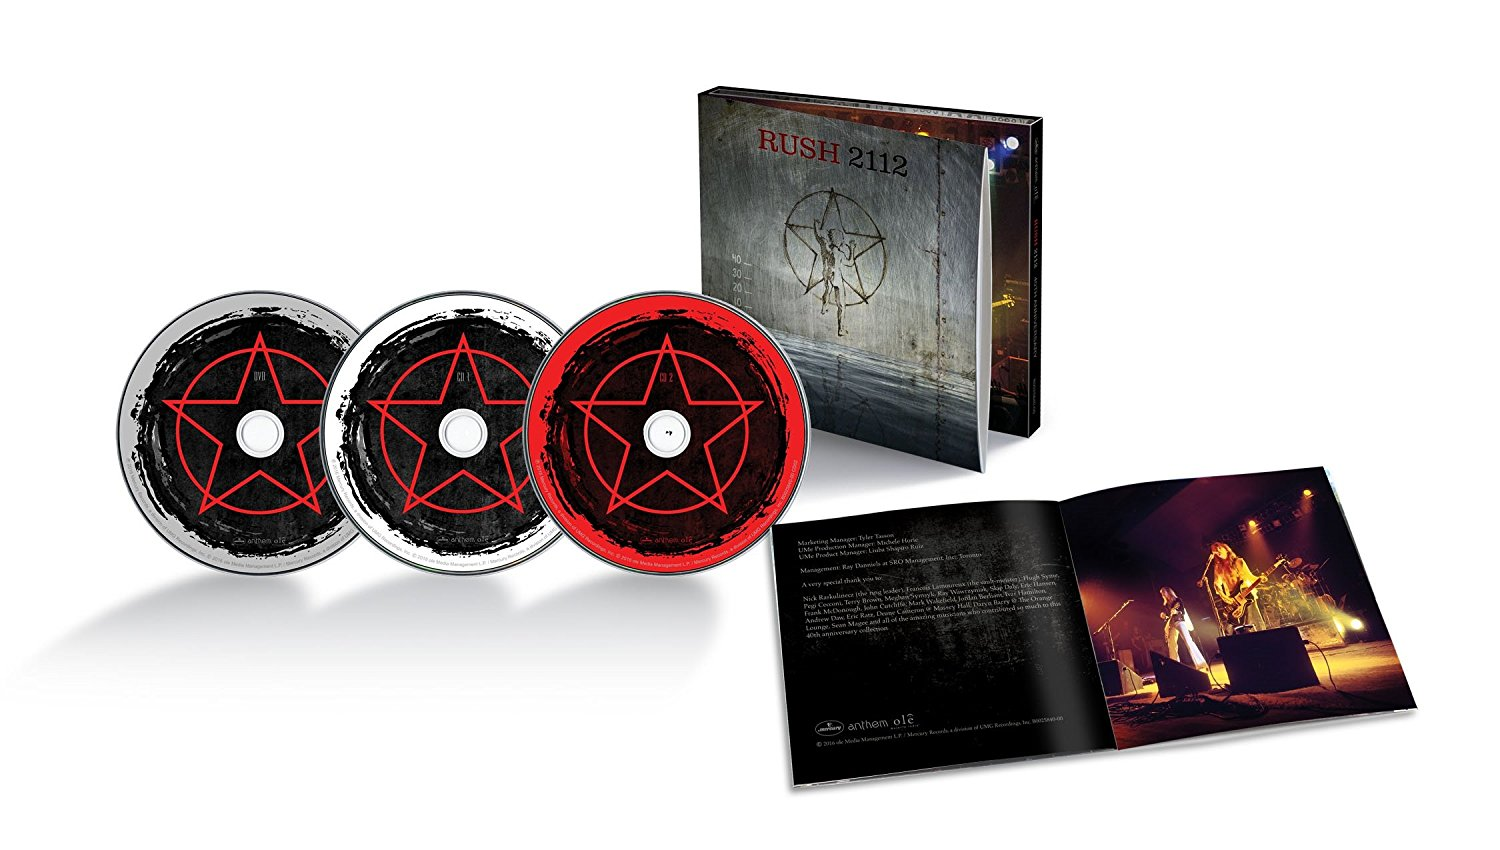 Rush 2112 / 2CD+DVD edition